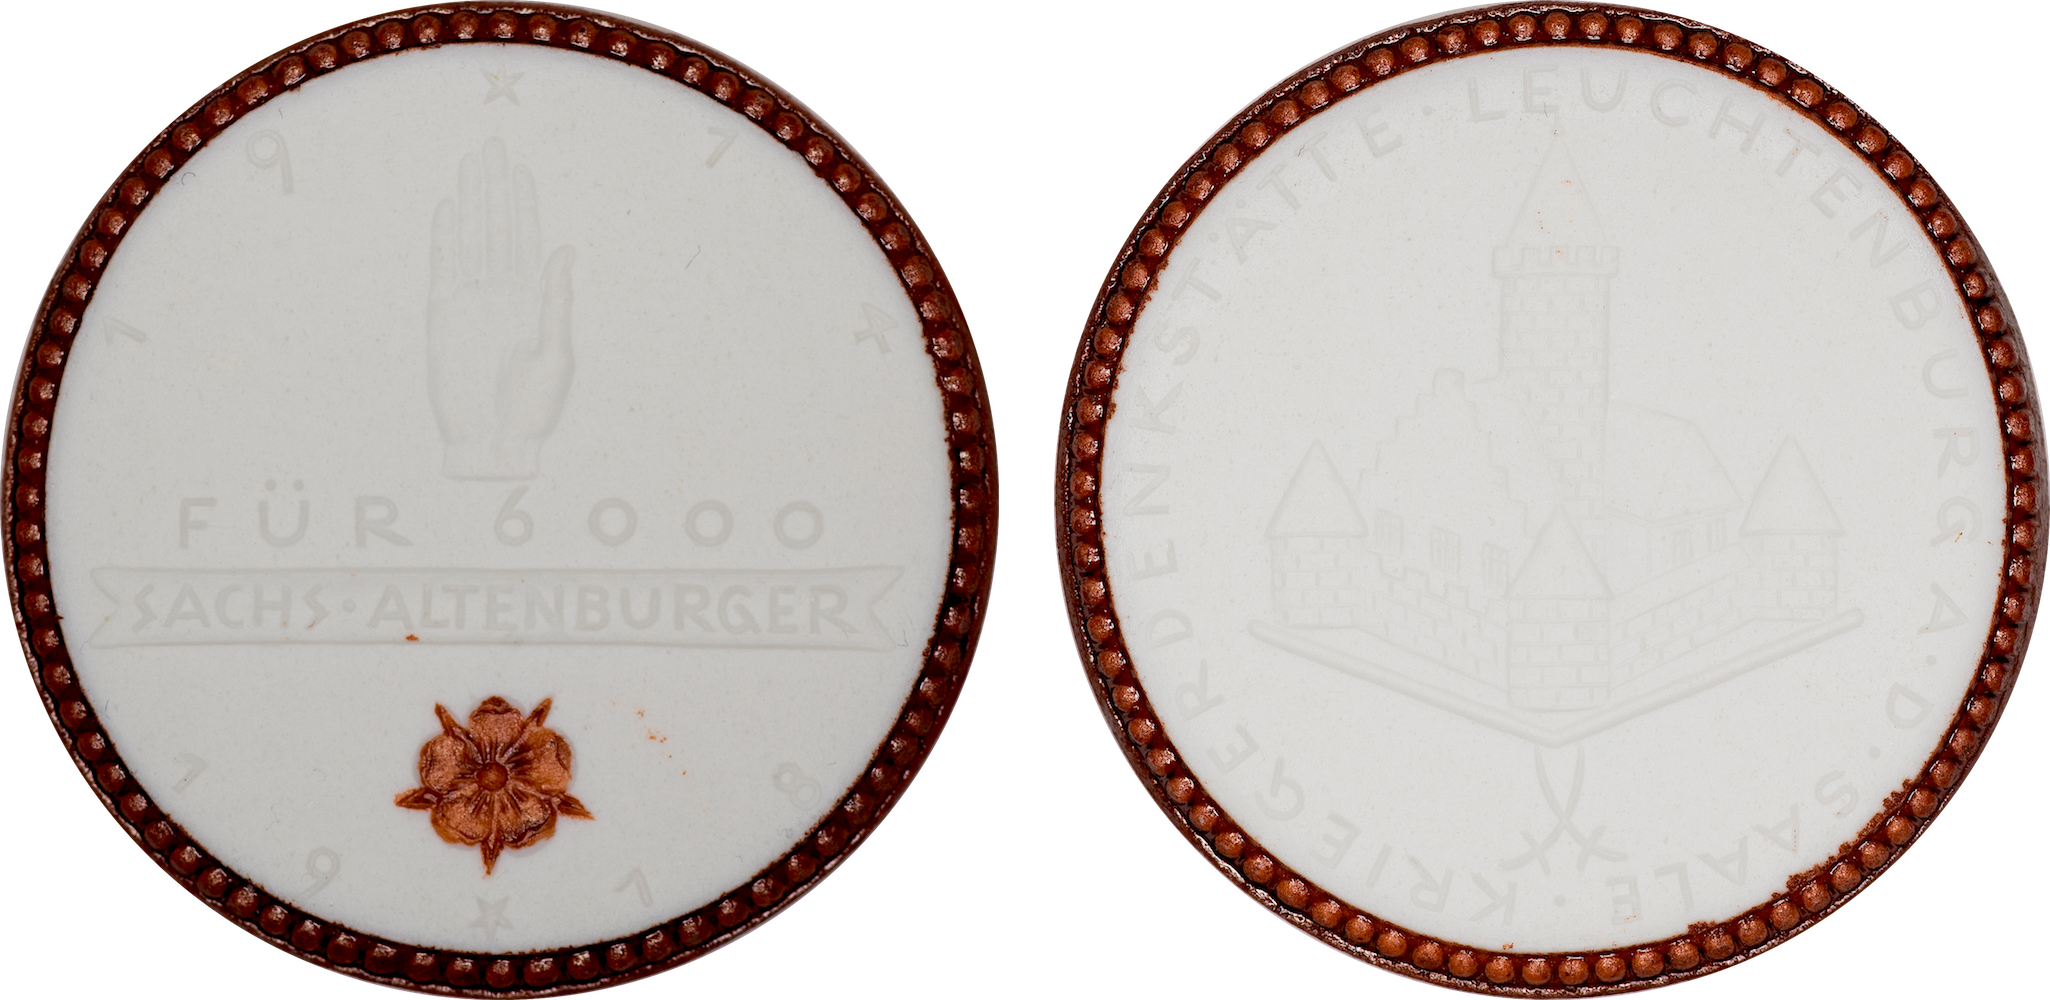 #14  Diameter: 39.5mm / Weight: 9.2g  Germany (Altenburg) 1918 Porcelain  Medal  Scheuch #  Mintage: